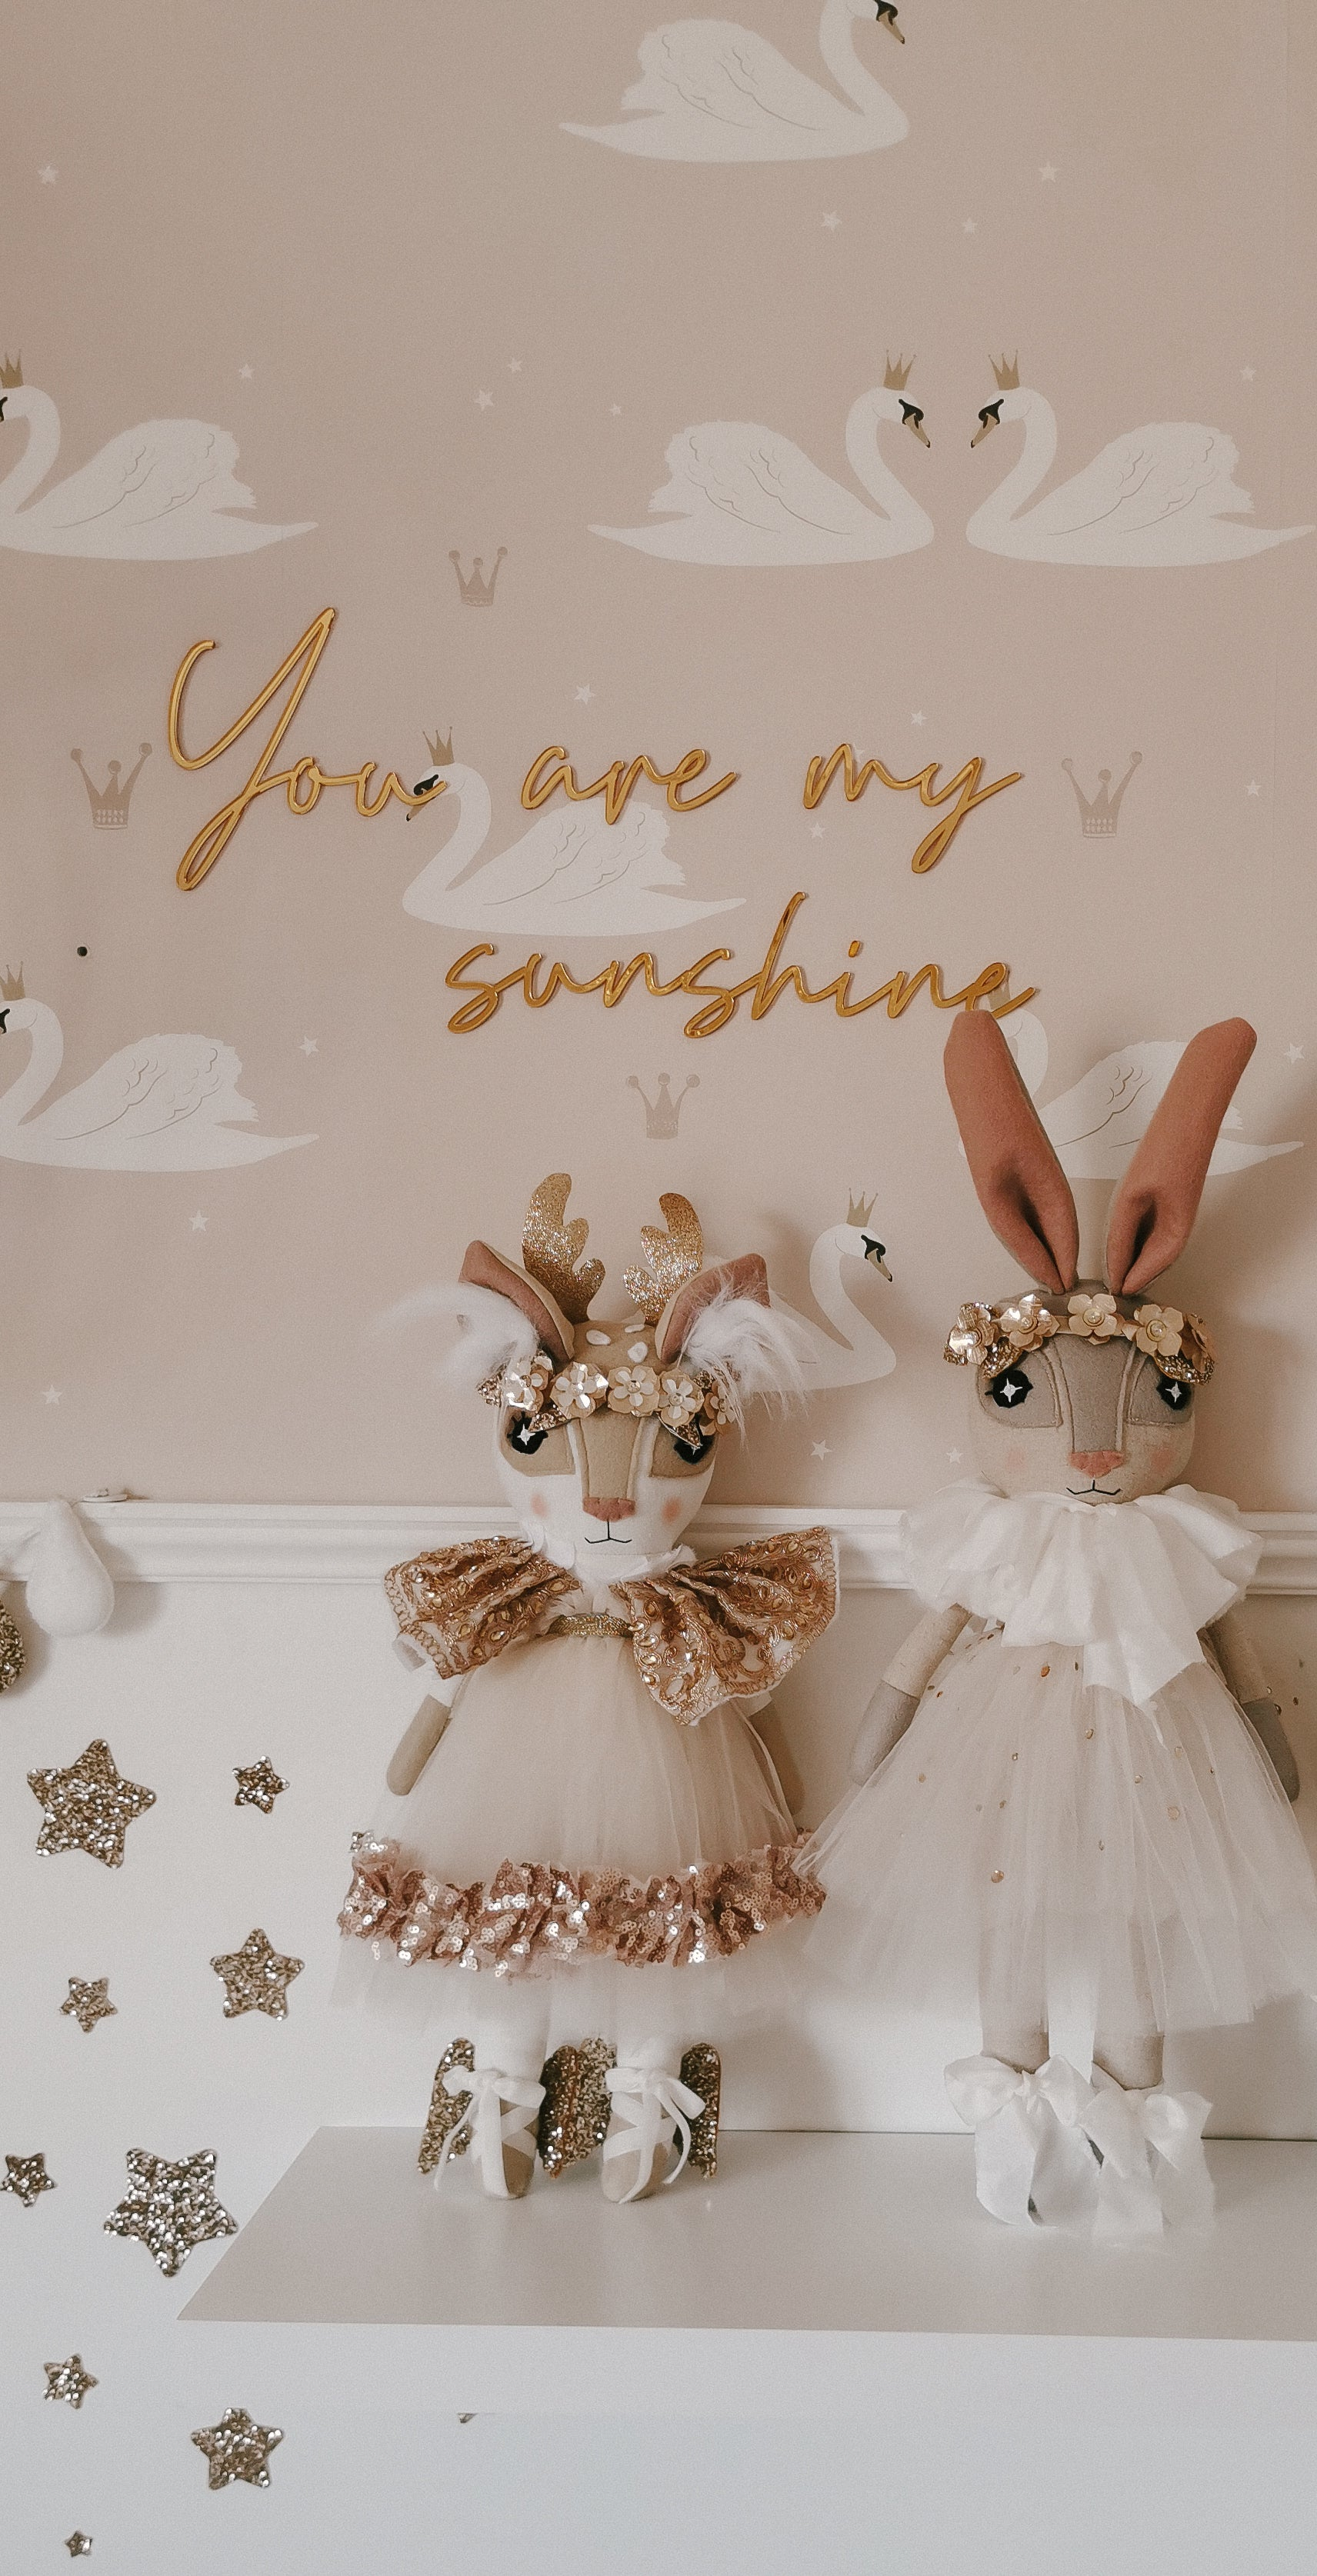 "PREORDER ""You are my sunshine"" Mirrored Wall Quote"